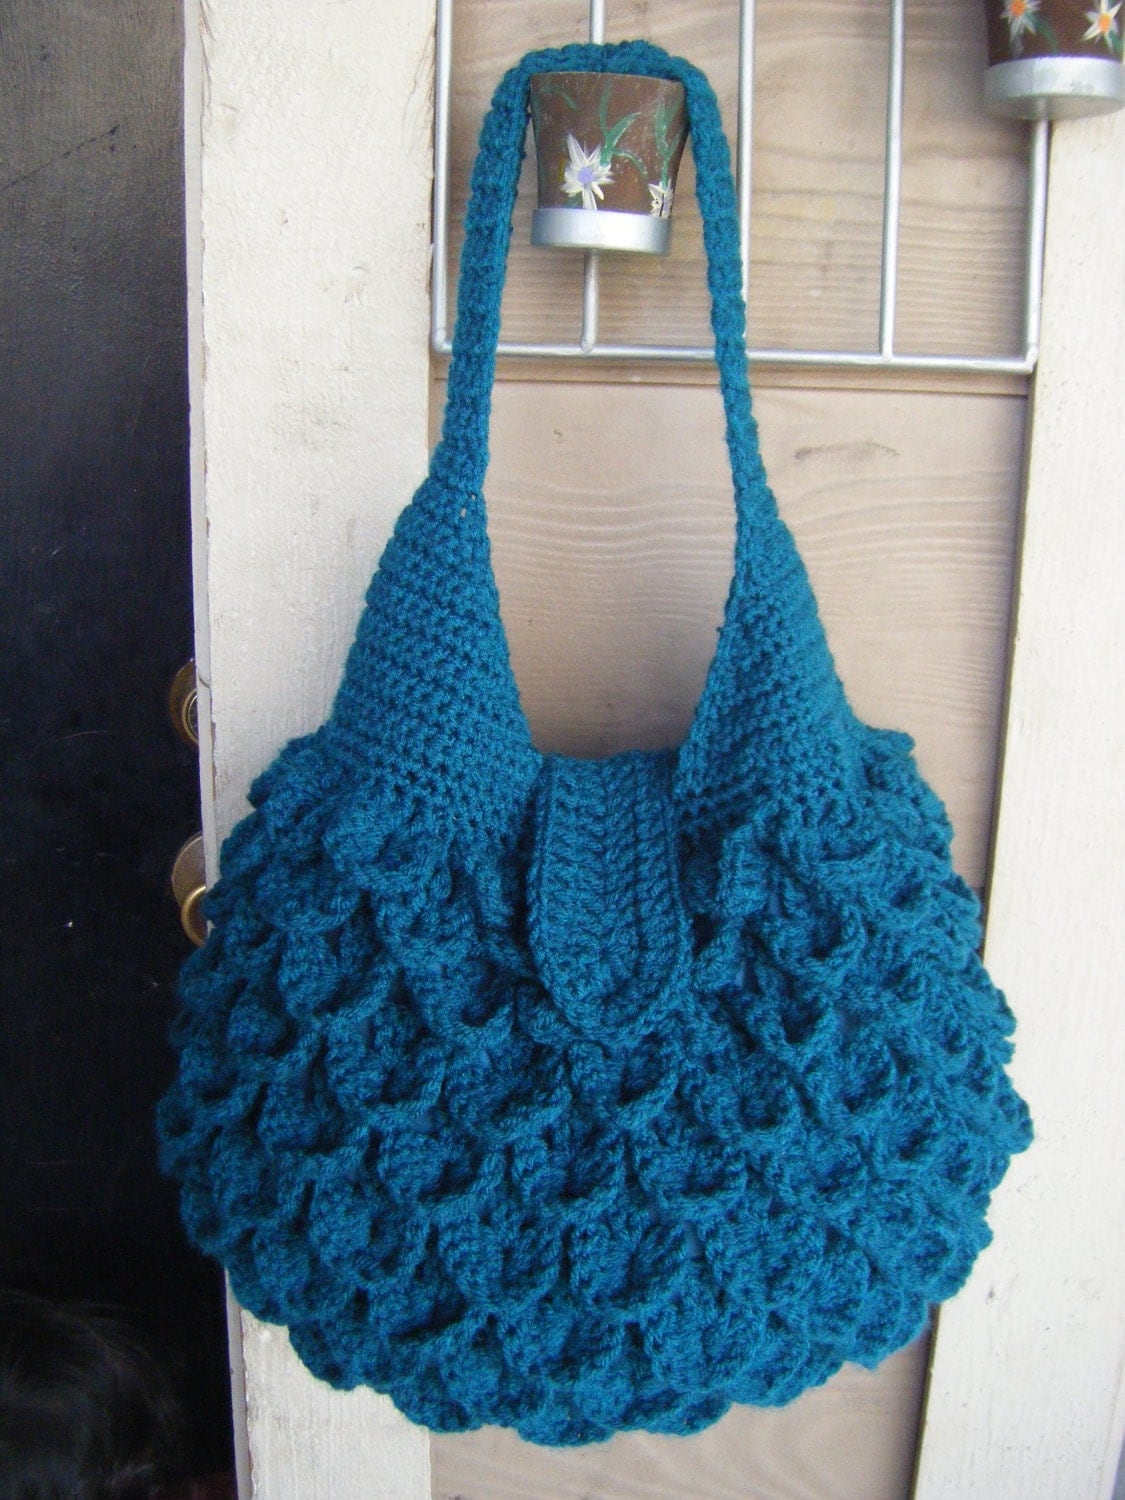 Crochet Backpack Pattern : Crochet Crocodile Bag Pattern PERMISSION SELL by NatalieSpot